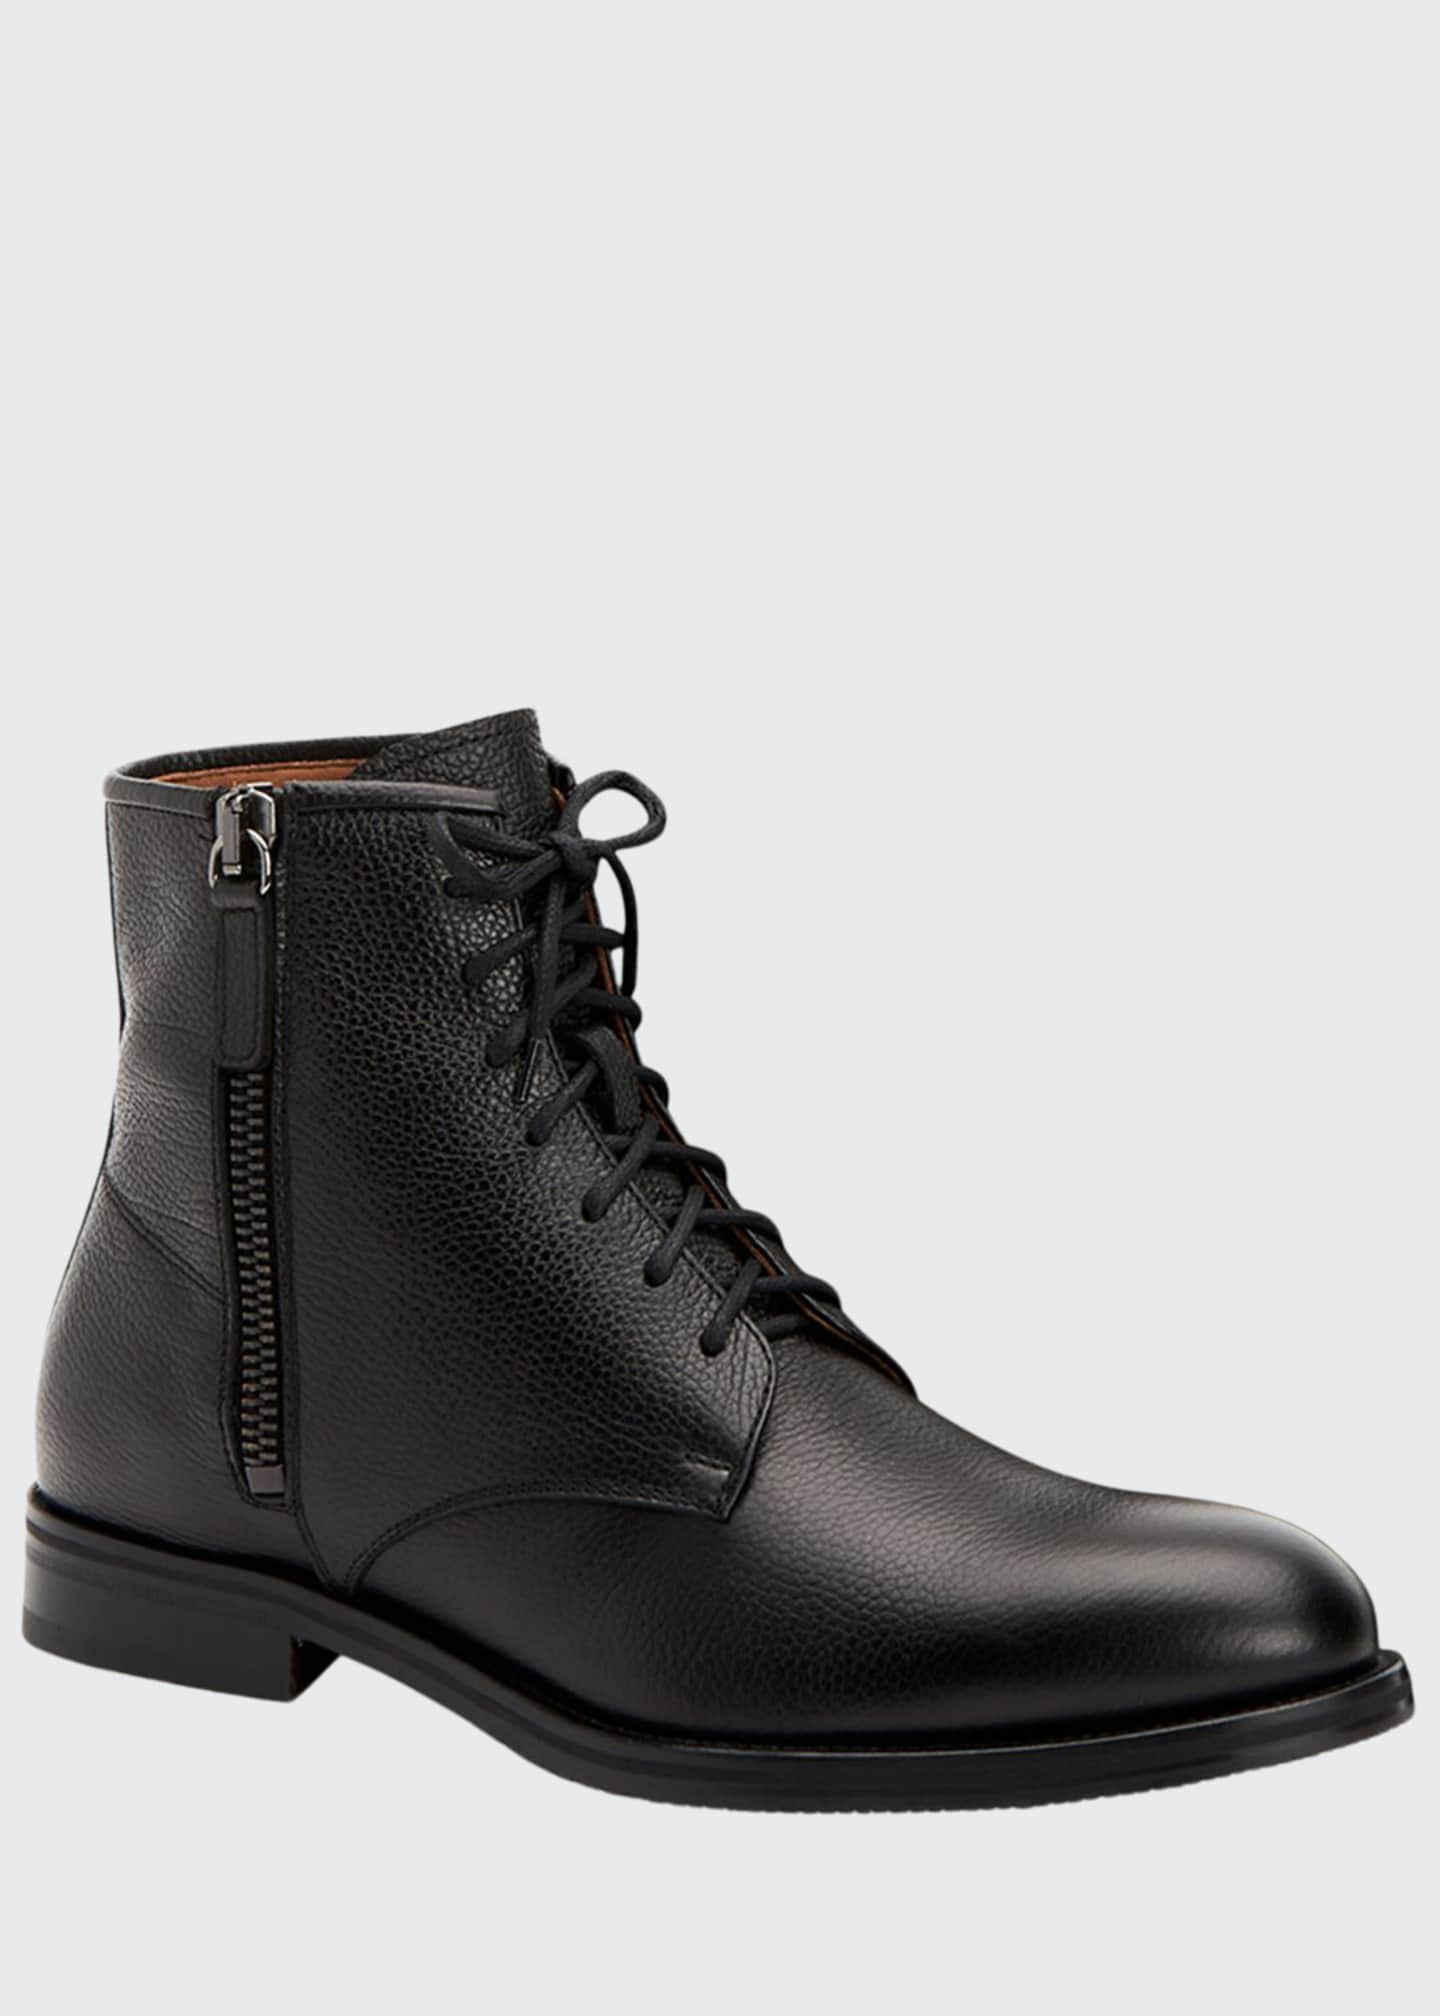 Image 1 of 4: Men's Vladimir Leather Boots